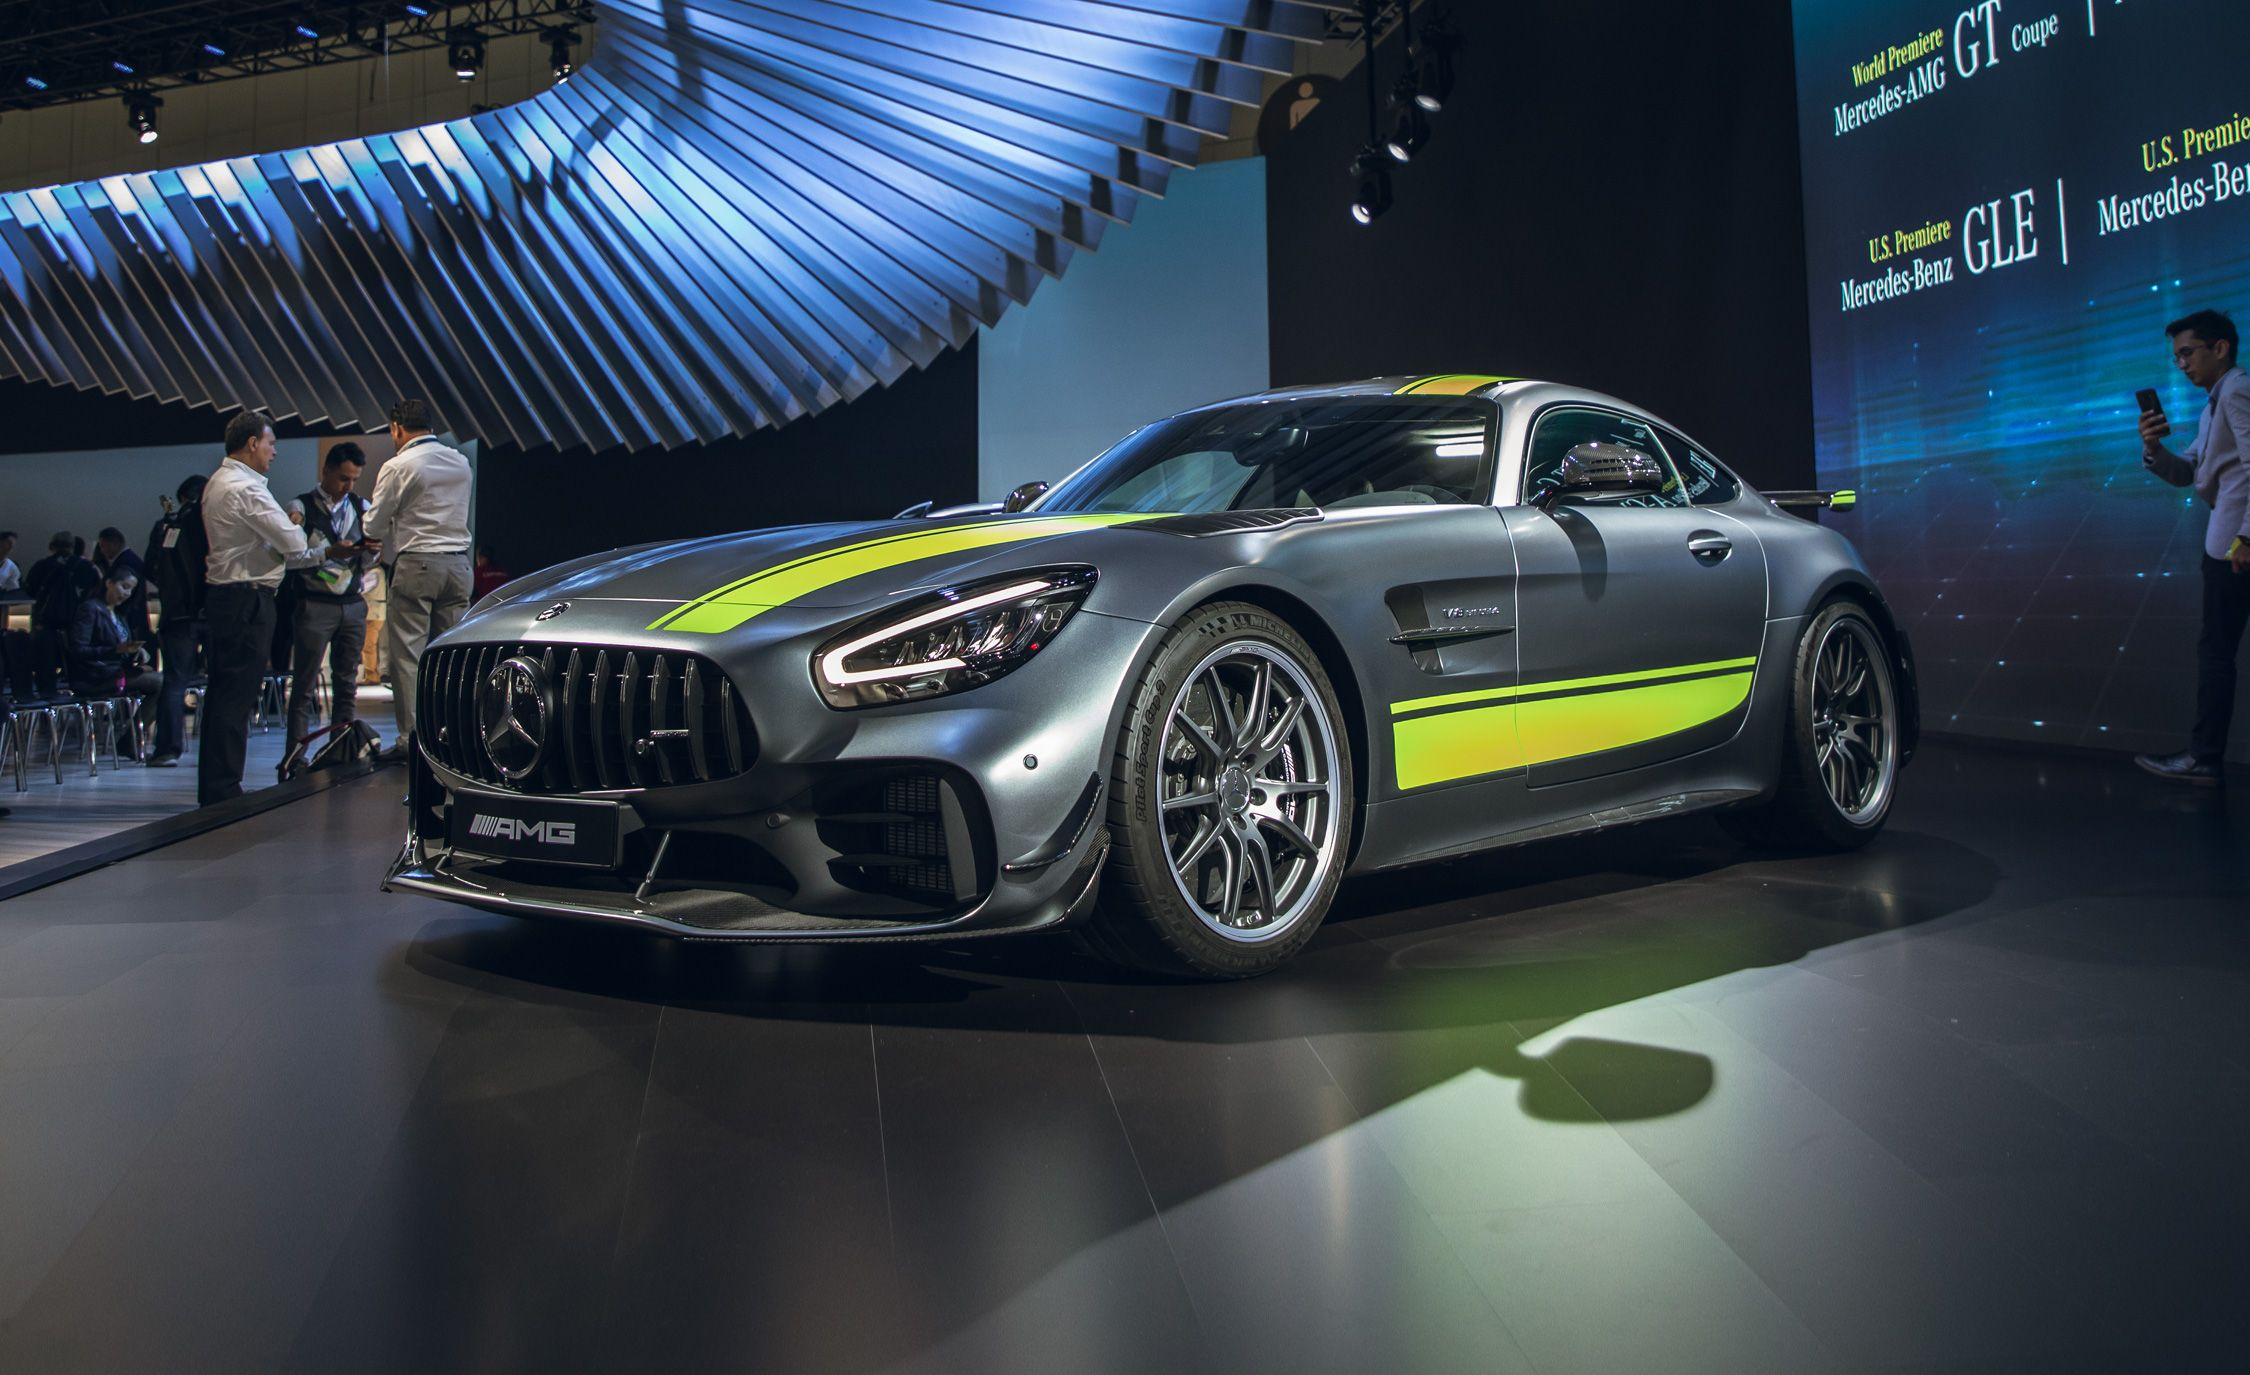 2020 mercedes amg gt r pro placement